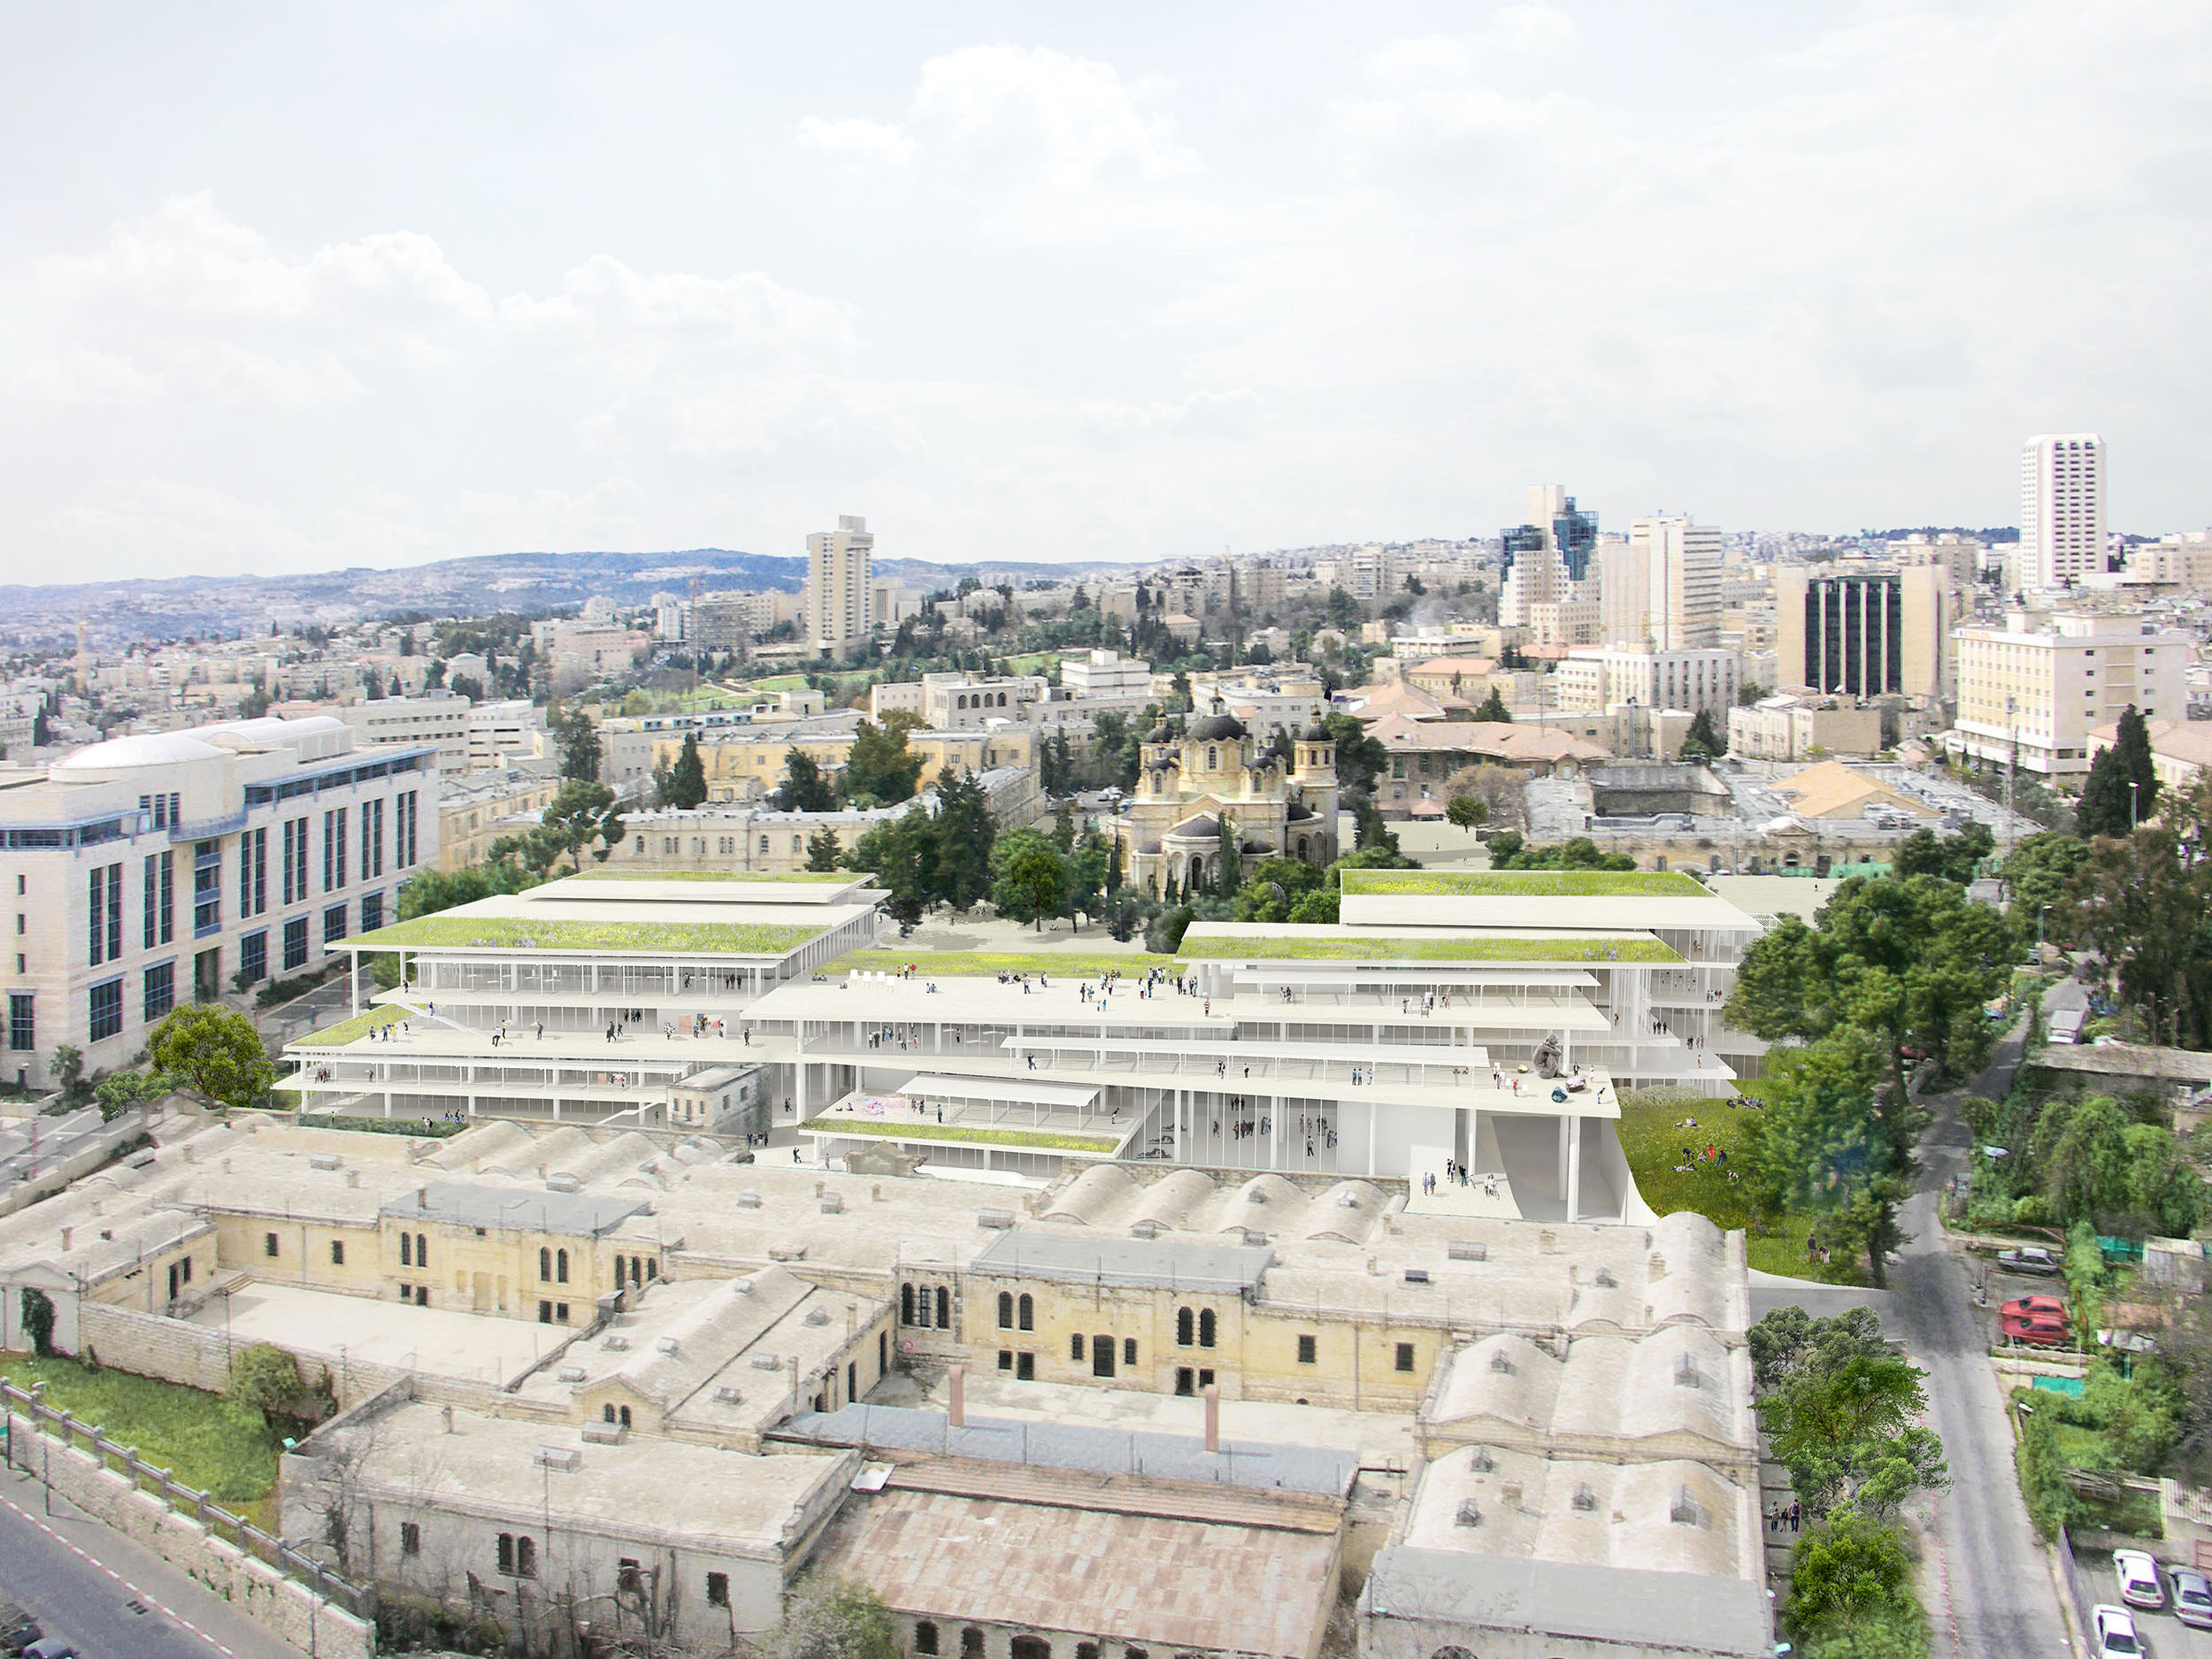 Image rendering of Bezalel Academy of Arts and Design, Jerusalem, Israel. Courtesy of SANAA.